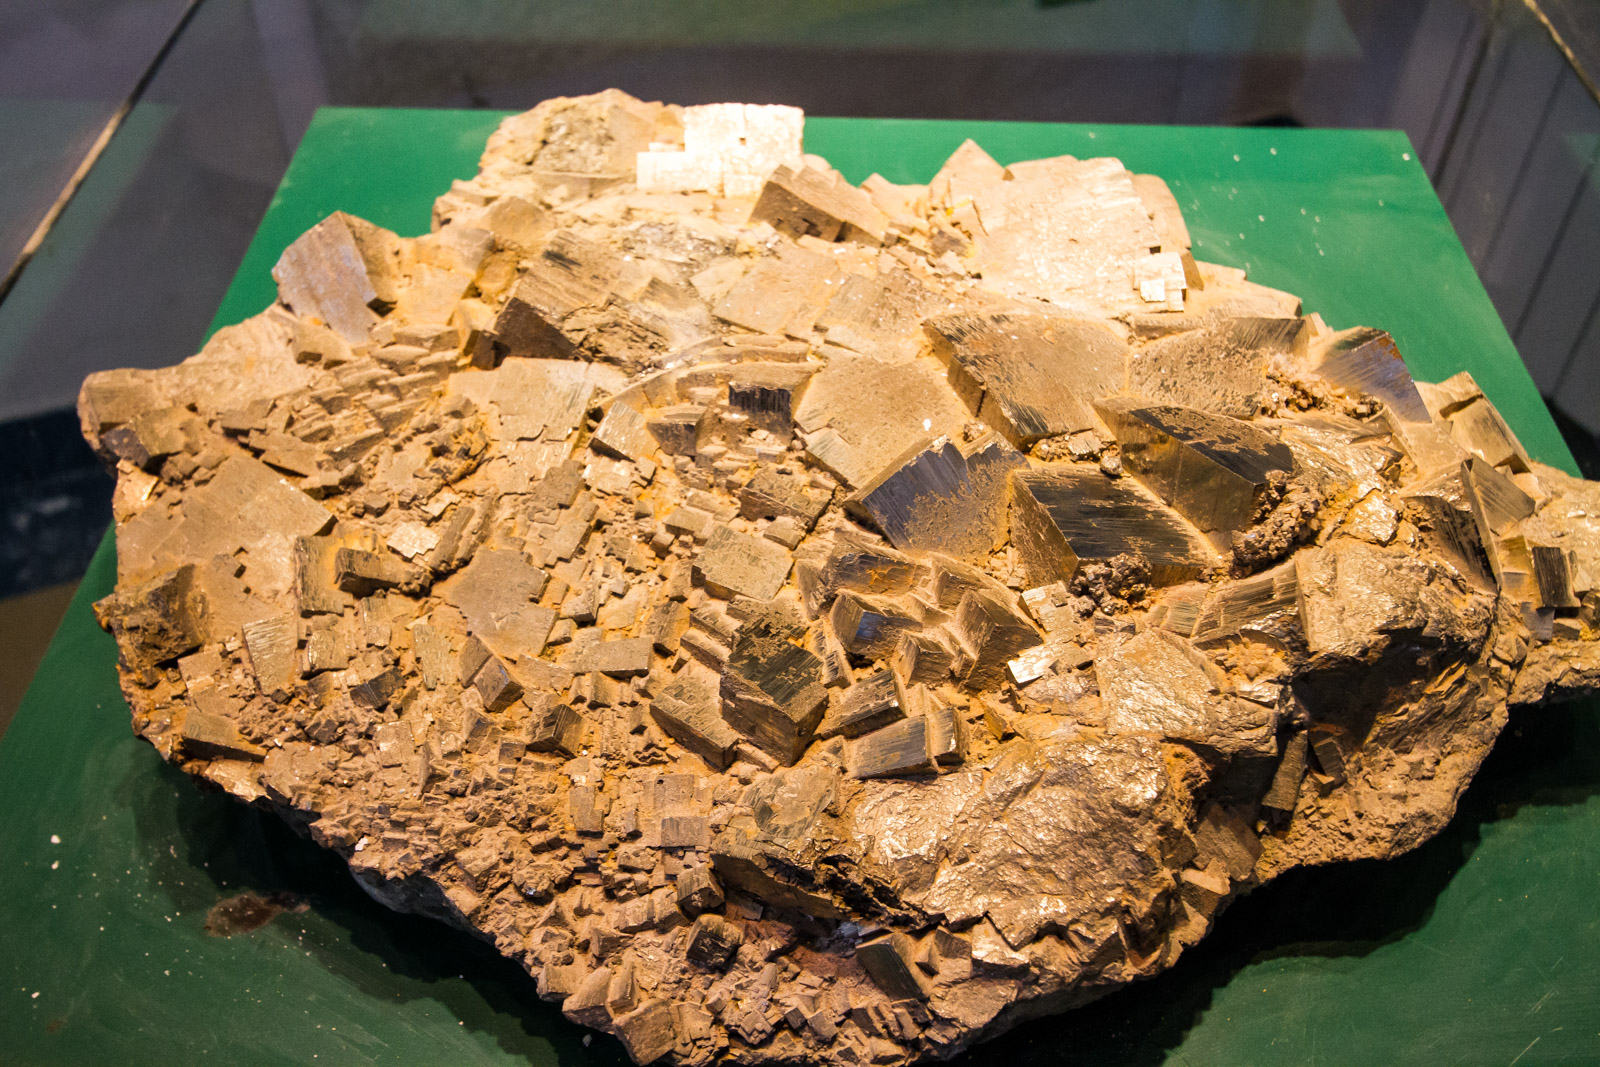 Pyryte has a gold lustre to it, and was used significantly for sulphuric acid production before oil superseeded it. Notice the cyrstalisation on the mineral.